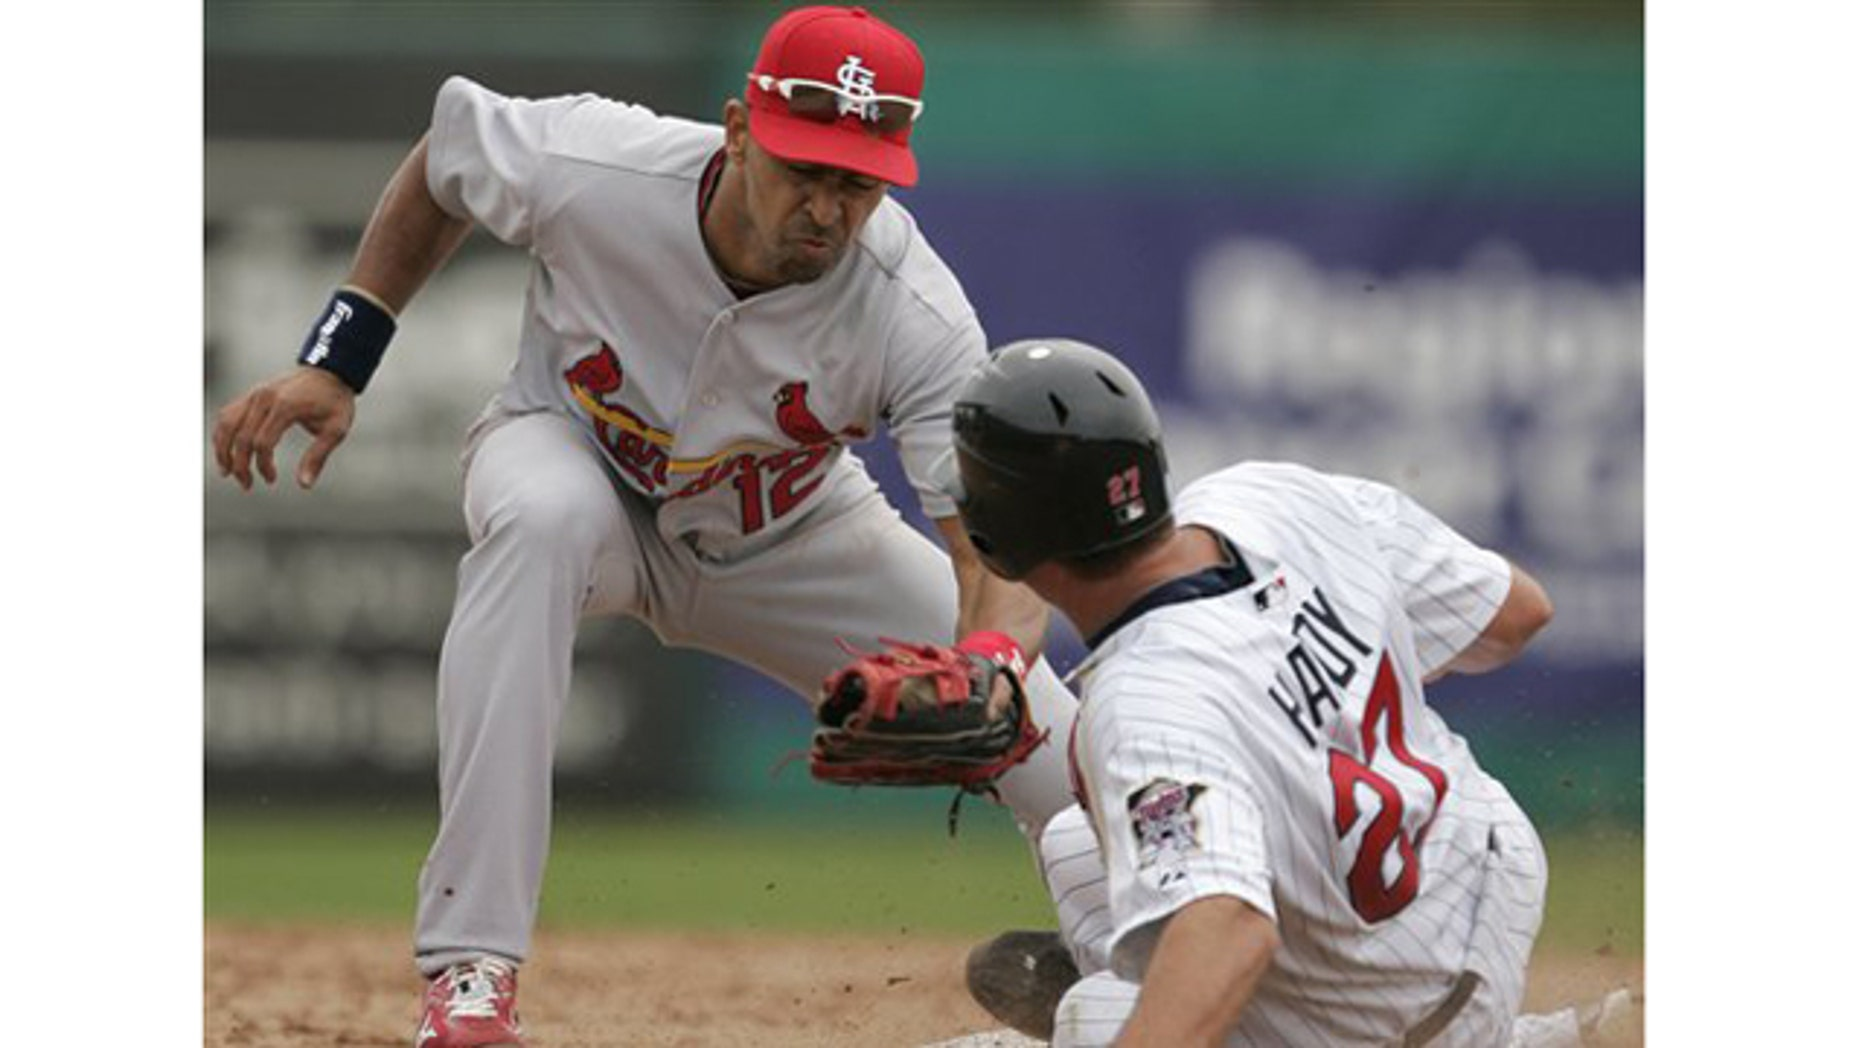 St. Louis Cardinals shortstop Julio Lugo tries to tag Minnesota Twins' J.J. Hardy who steals second base in the second inning of a spring training baseball game in Fort Myers, Fla., Tuesday, March 9, 2010.